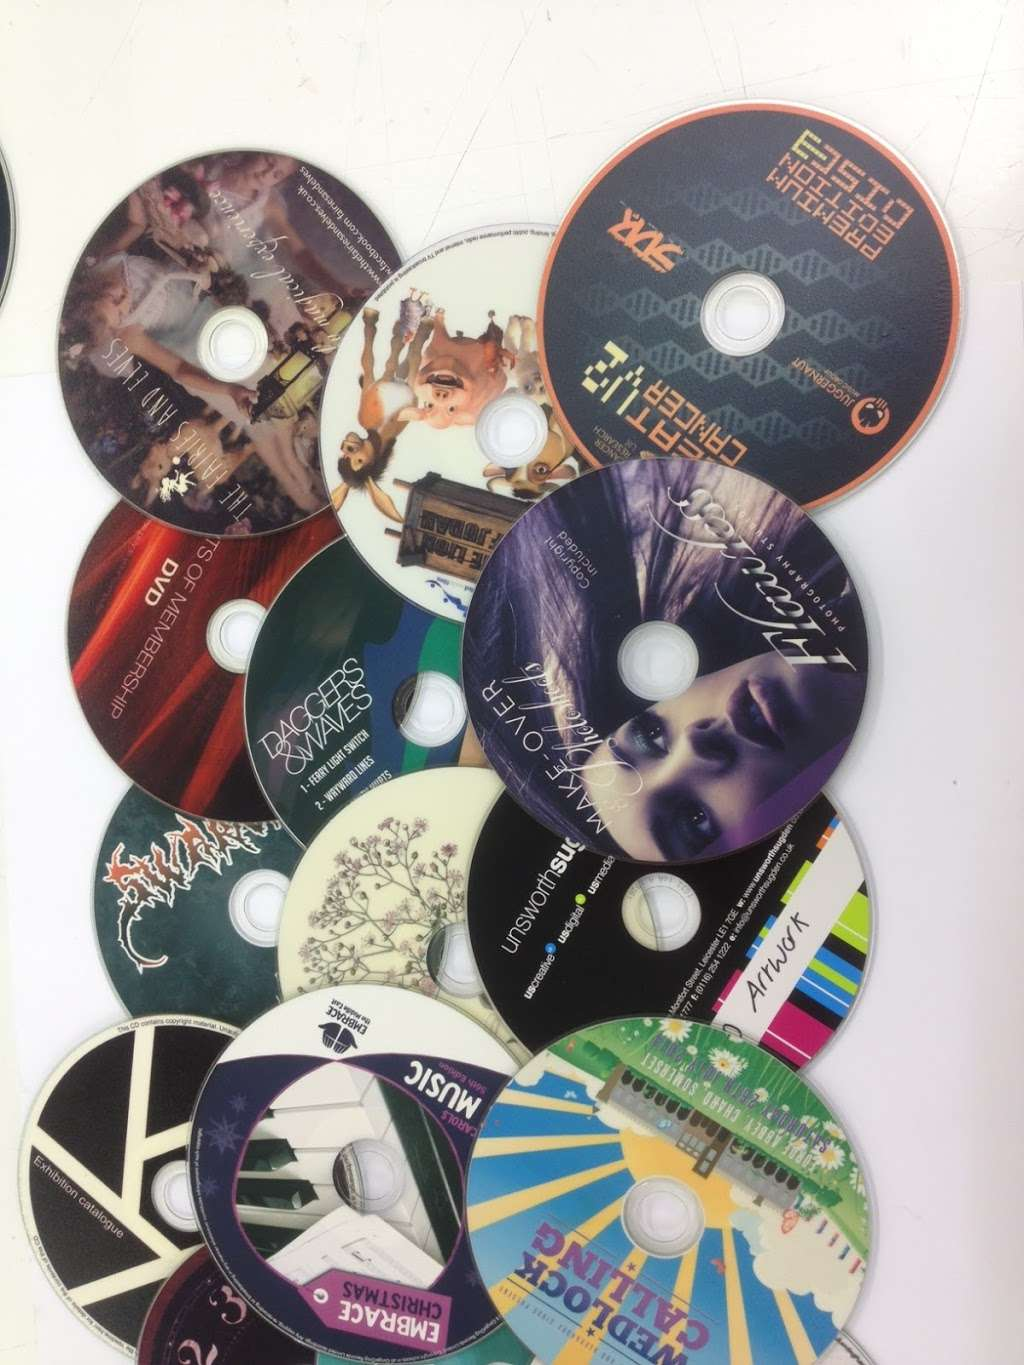 Direct CDs Ltd (CD Printing CD Duplication Services) - store    Photo 1 of 10   Address: Unit 2, Erminepoint Gentlemens Field, Westmill Rd, Ware SG12 0EF, UK   Phone: 01920 465023